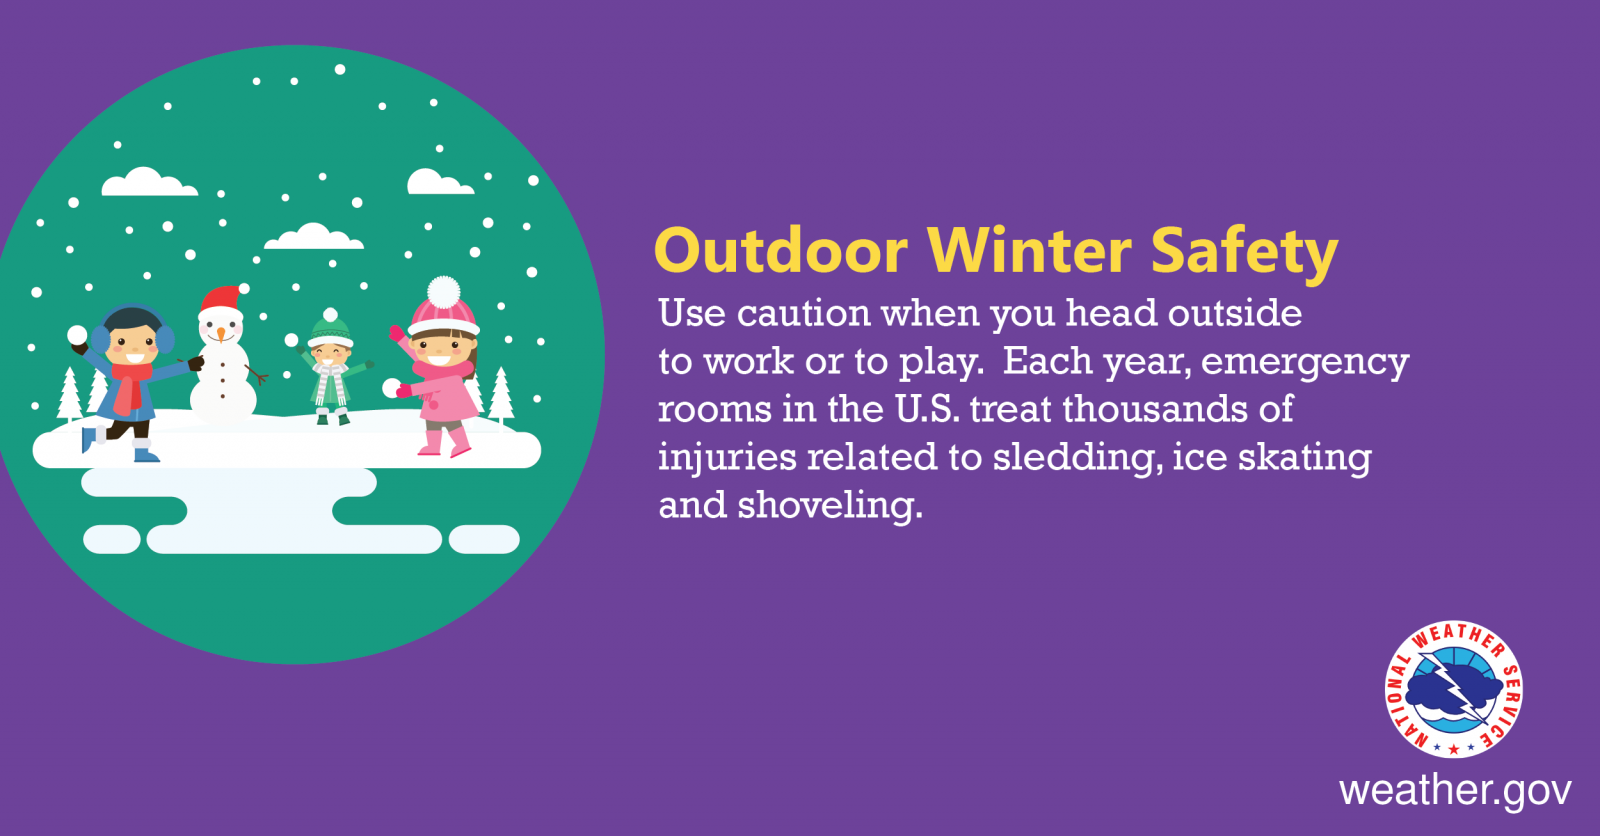 Outdoor Winter Safety - Use caution when you head outside to work or to play. Each year, emergency rooms in the U.S. treat thousands of injuries related to sledding, ice skating and shoveling.